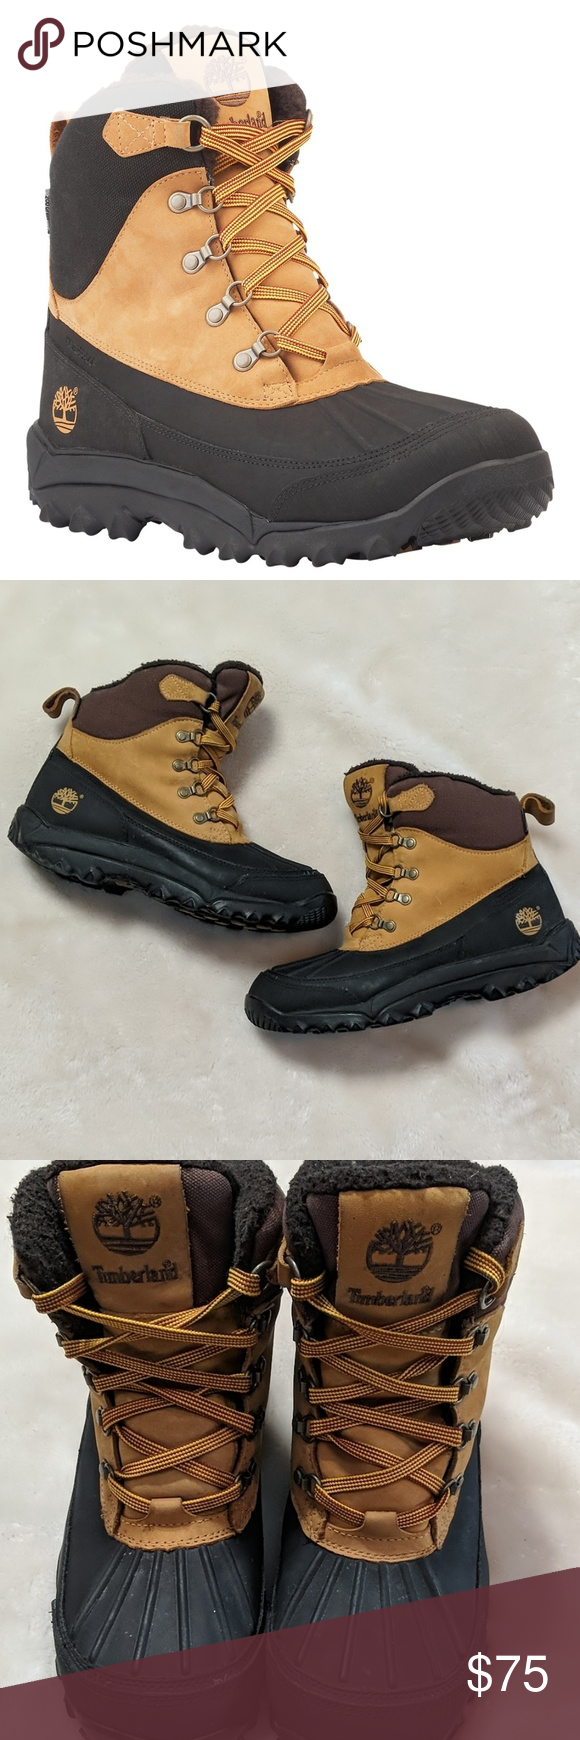 Timberland Rime Ridge Duck Boot in Wheat Rime Ridge duck